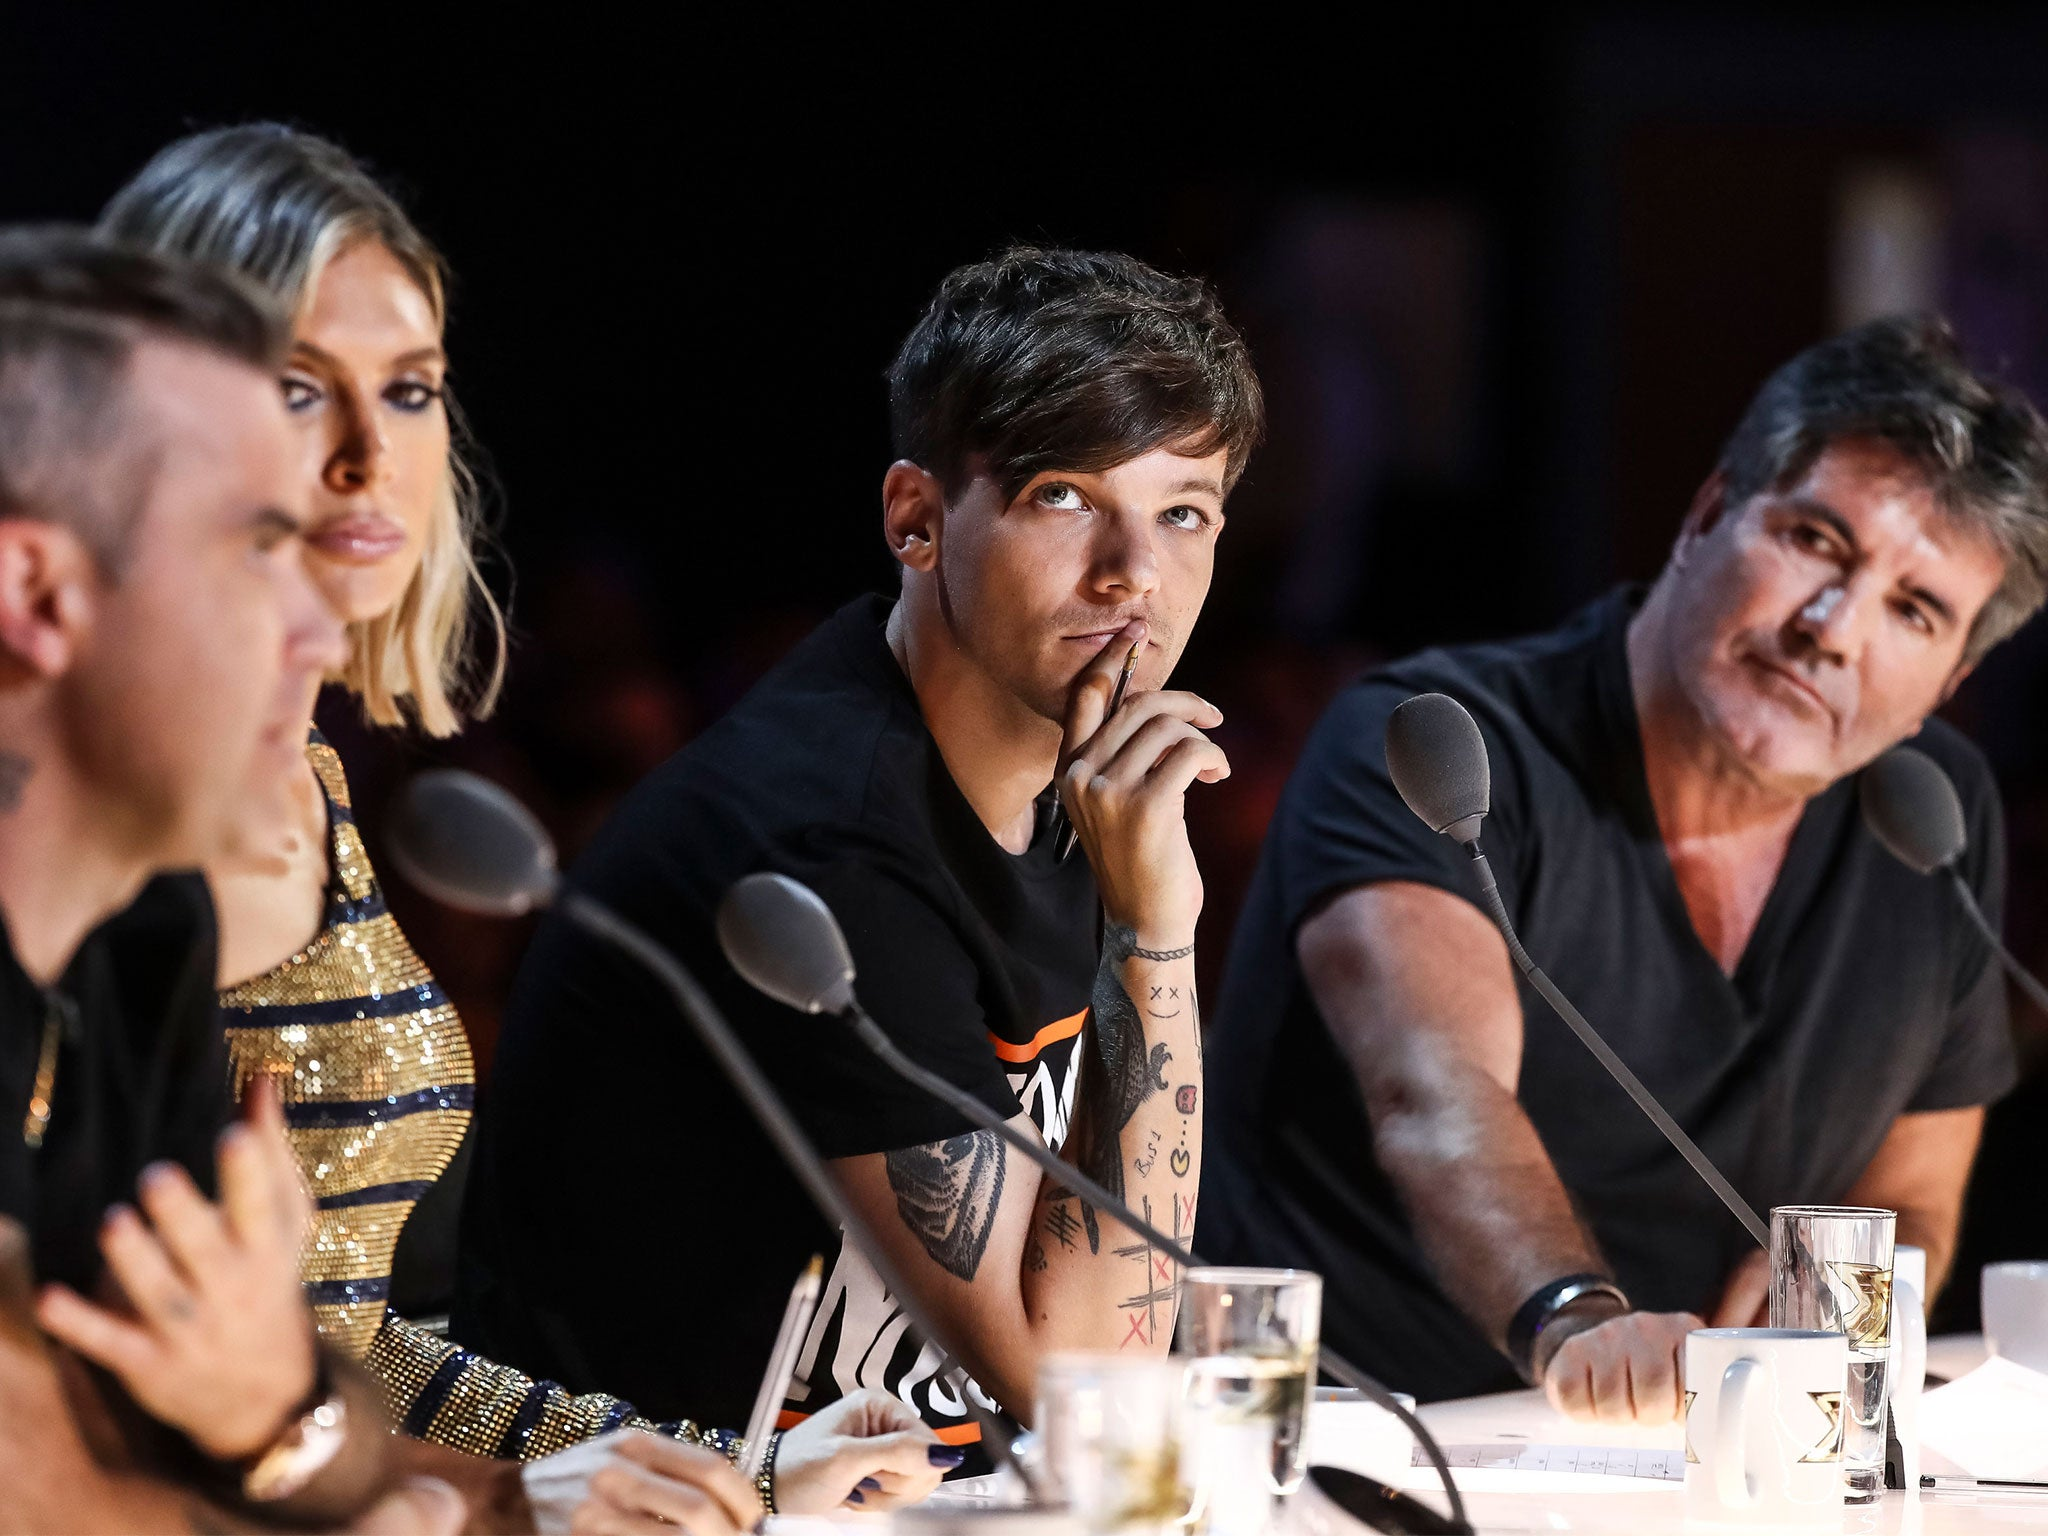 X Factor suffers worst ratings in its history as sound